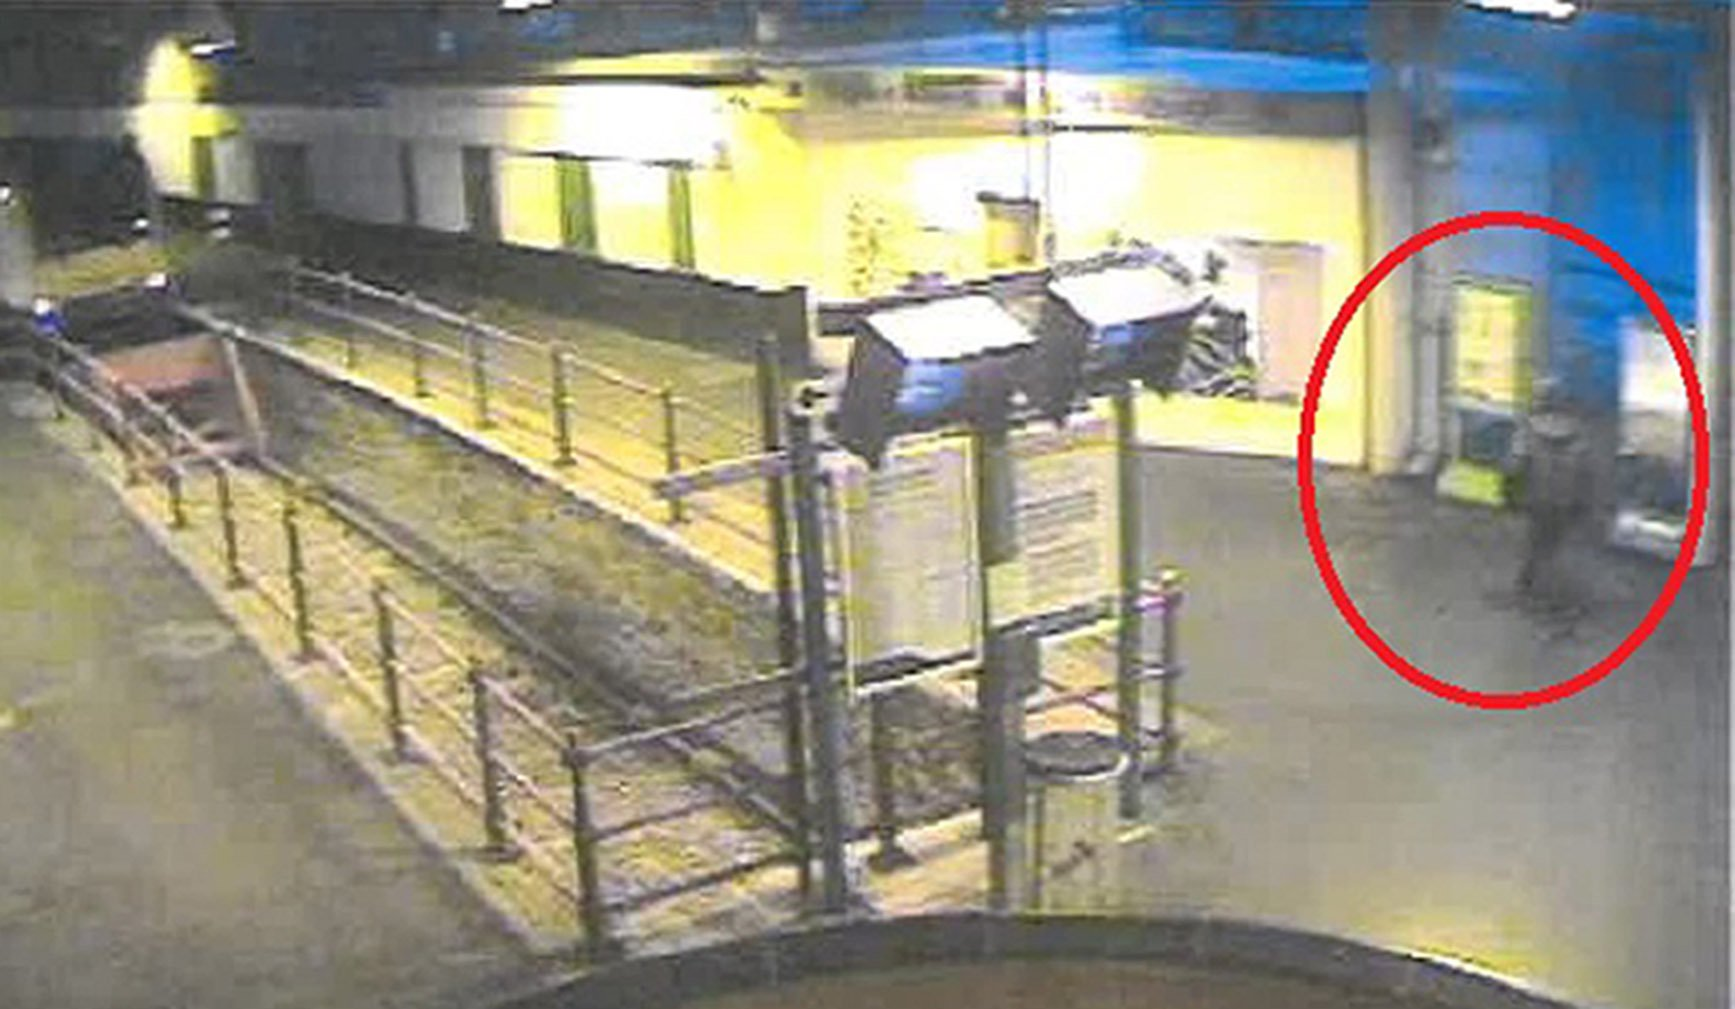 CCTV shows Maguire kicking and stamping down on the head of the seagull - A man who stamped a seagull to death in Holyhead train station has been convicted under the Animal Cruelty Act. Martin Maguire, 52, and of no fixed address, was found guilty of intentionally killing a wild bird at Caernarfon Magistrates? Court on 4 February, following the shocking and brutal incident last year. The court heard that at around 5:30am on 7 August, Maguire followed a seagull who was walking down a platform and purposely trapped it into a corner by some poster boards. CCTV shows Maguire then kicking and stamping down on the head of the seagull several times before walking away, killing it in the process. A member of station staff was starting their shift soon after and found the dead seagull with a broken neck and snapped wing. After an investigation by BTP officers, Maguire was arrested after being spotted at Holyhead station in November. At court he was fined ?180, and ordered to pay a surcharge of ?30 to fund victim services, plus ?200 in costs to the Crown Prosecution Service. Investigating Officer PC Harry Thompson said: ?This was a mindless and violent attack on an innocent animal, who suffered a painful, unnecessary and cruel death at the hands of Maguire. ?It was also incredibly distressing for the member of staff who found the dead seagull, and then had to watch Maguire?s attack in full on CCTV. Picture: Universal News And Sport (Europe) 13/02/2019